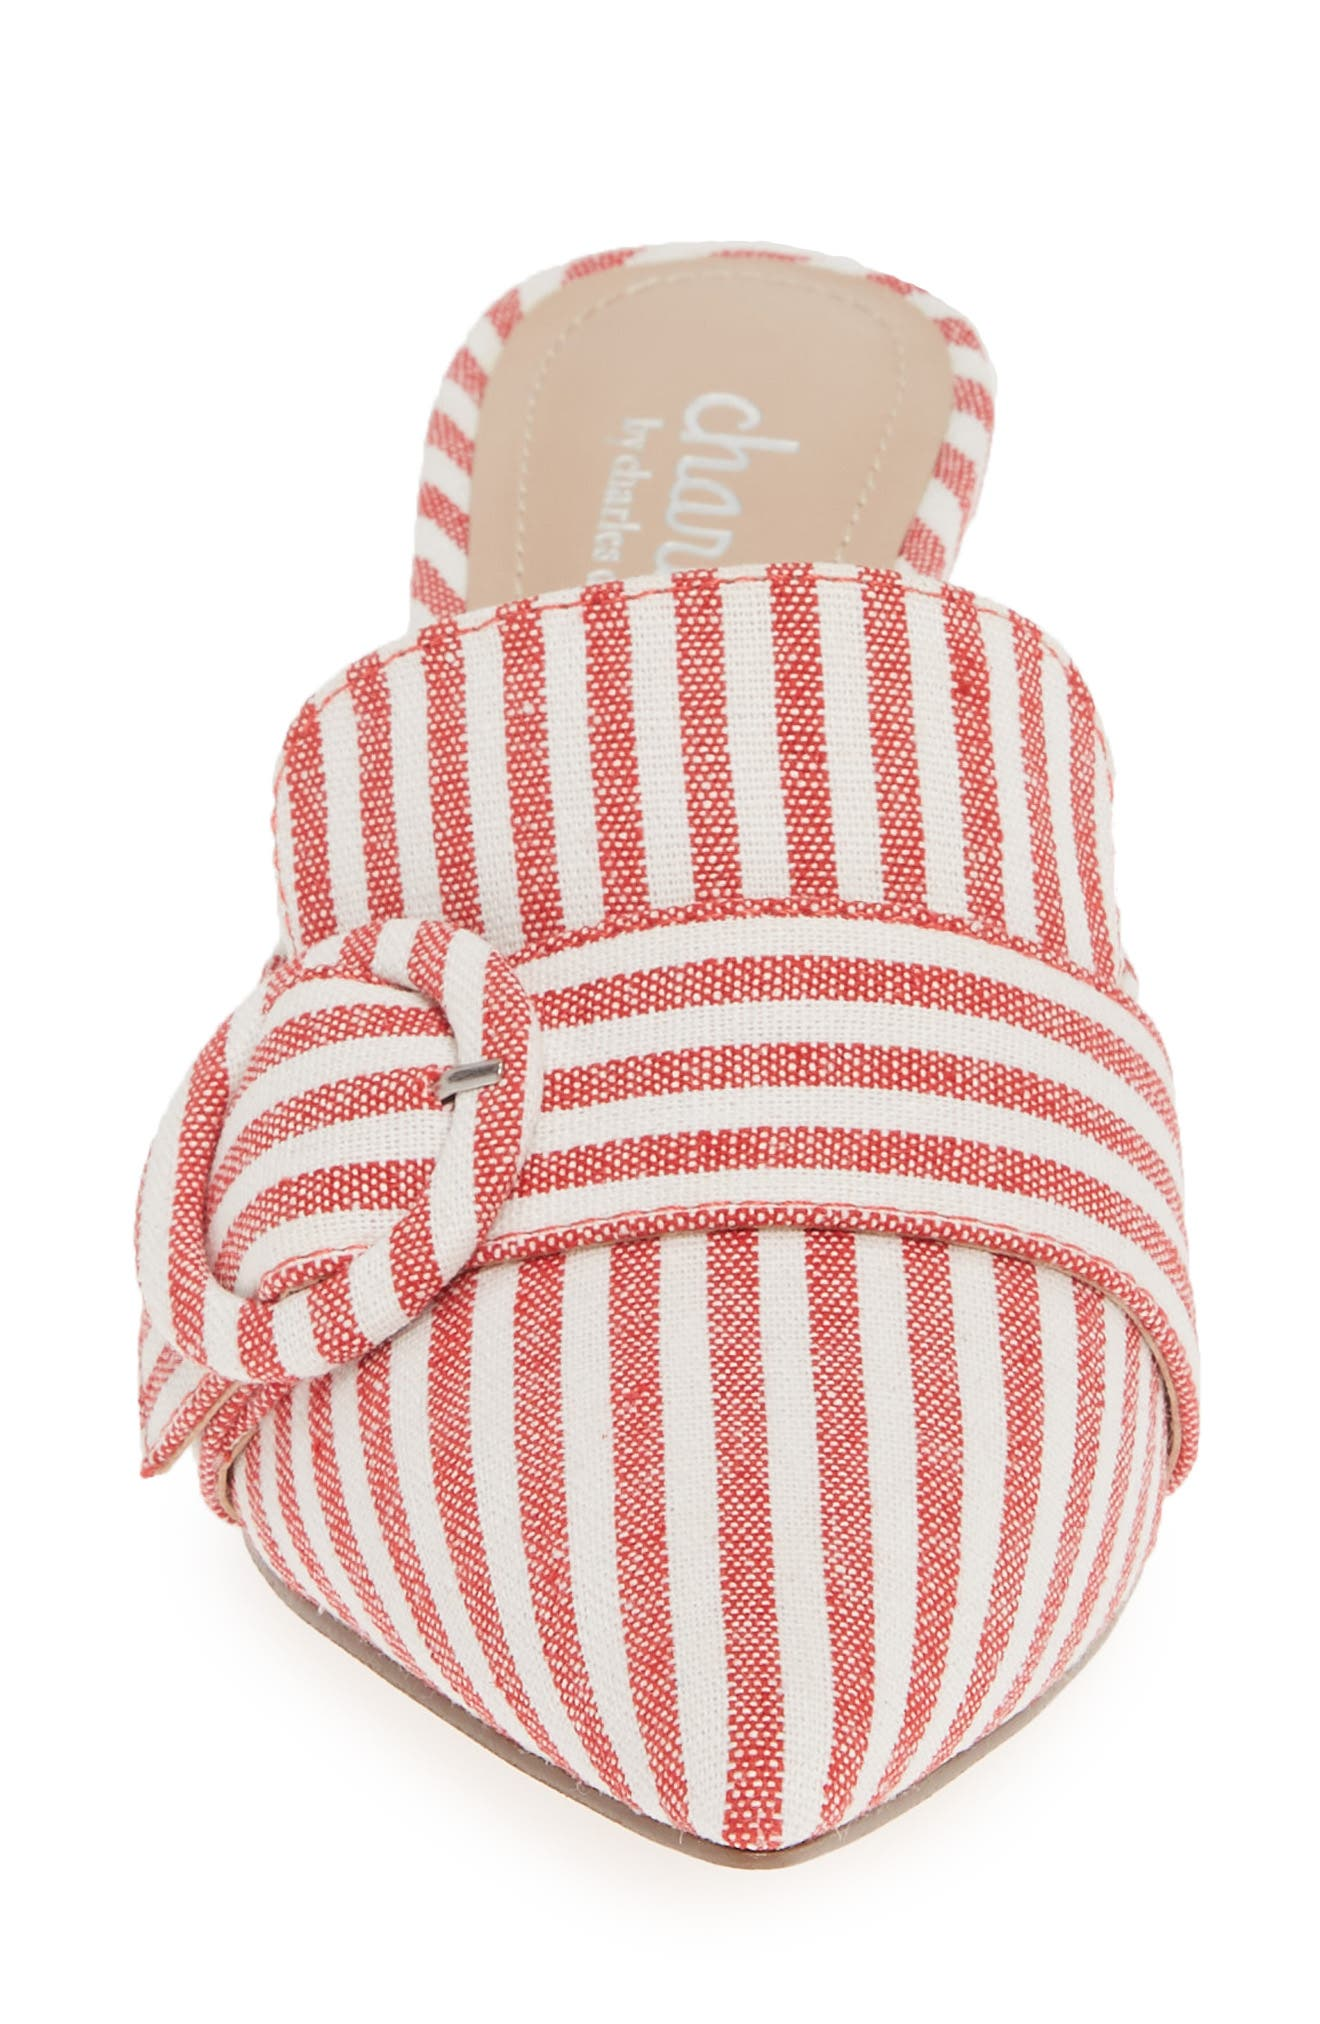 CHARLES BY CHARLES DAVID, Acapulco Mule, Alternate thumbnail 4, color, CANDY RED FABRIC